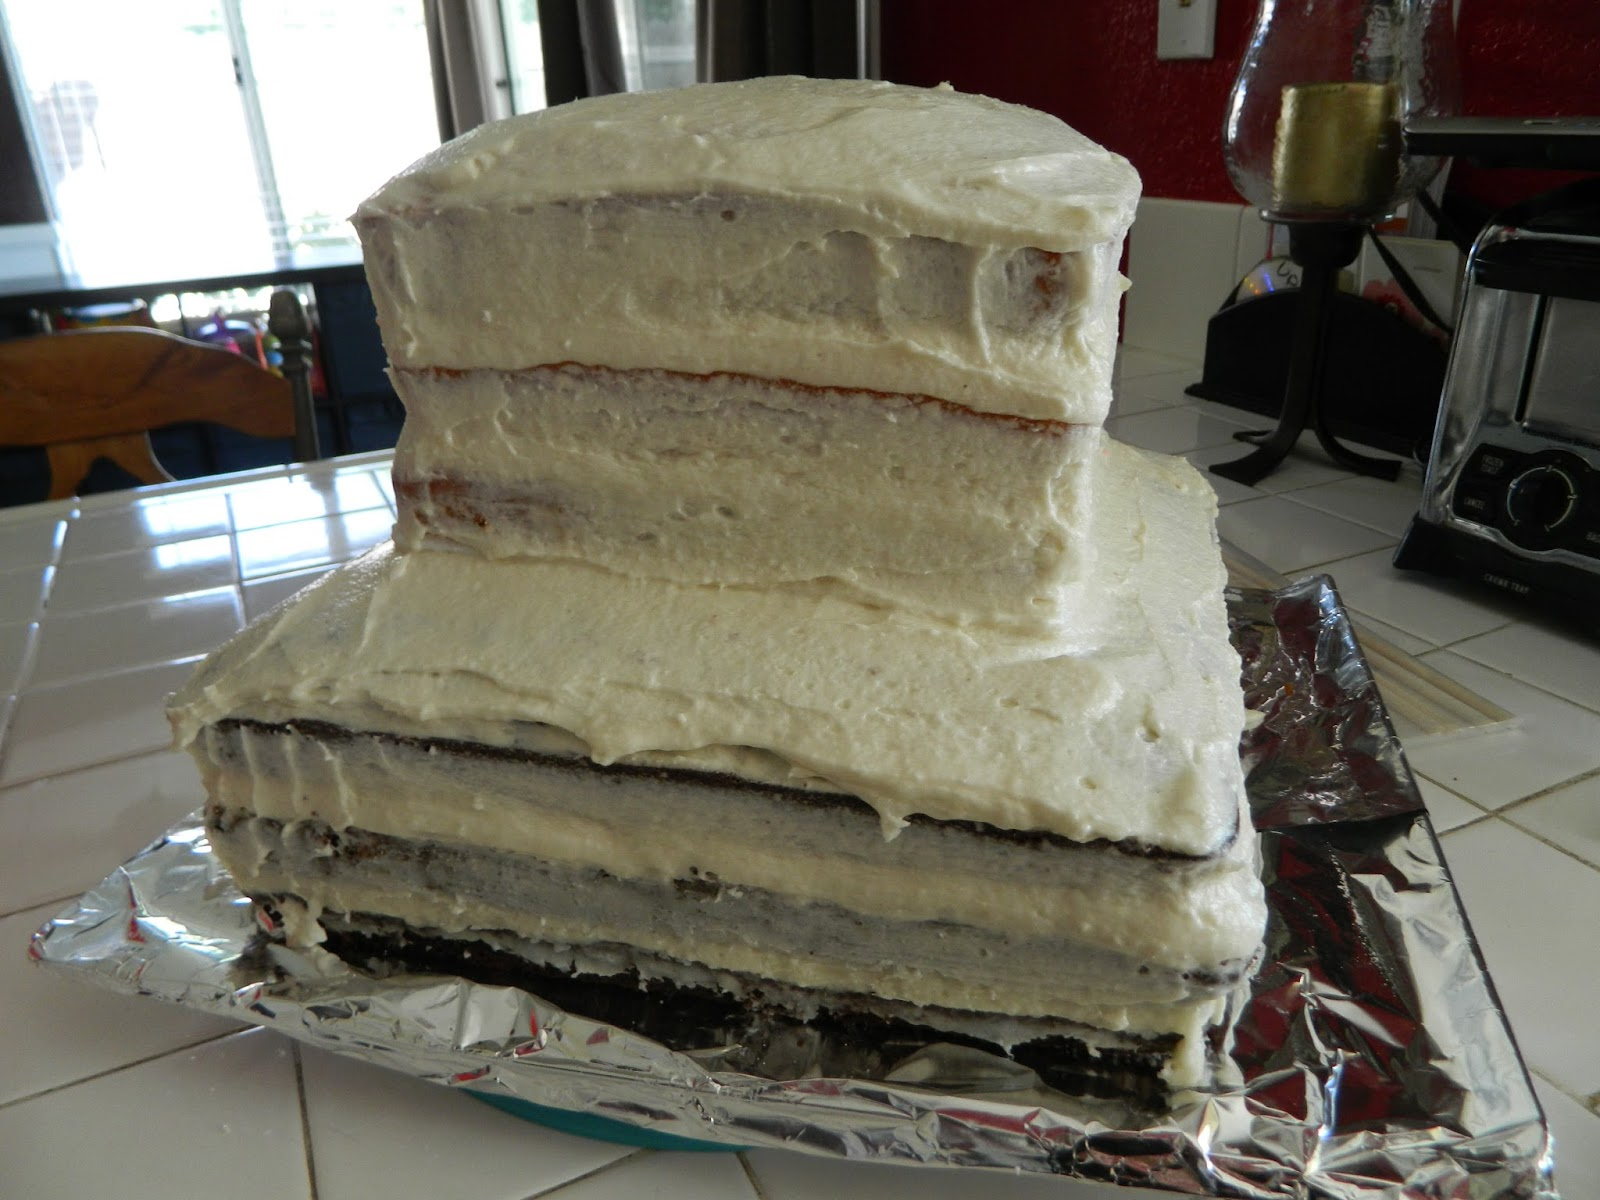 How Much Weight Can Cake Tier Hold